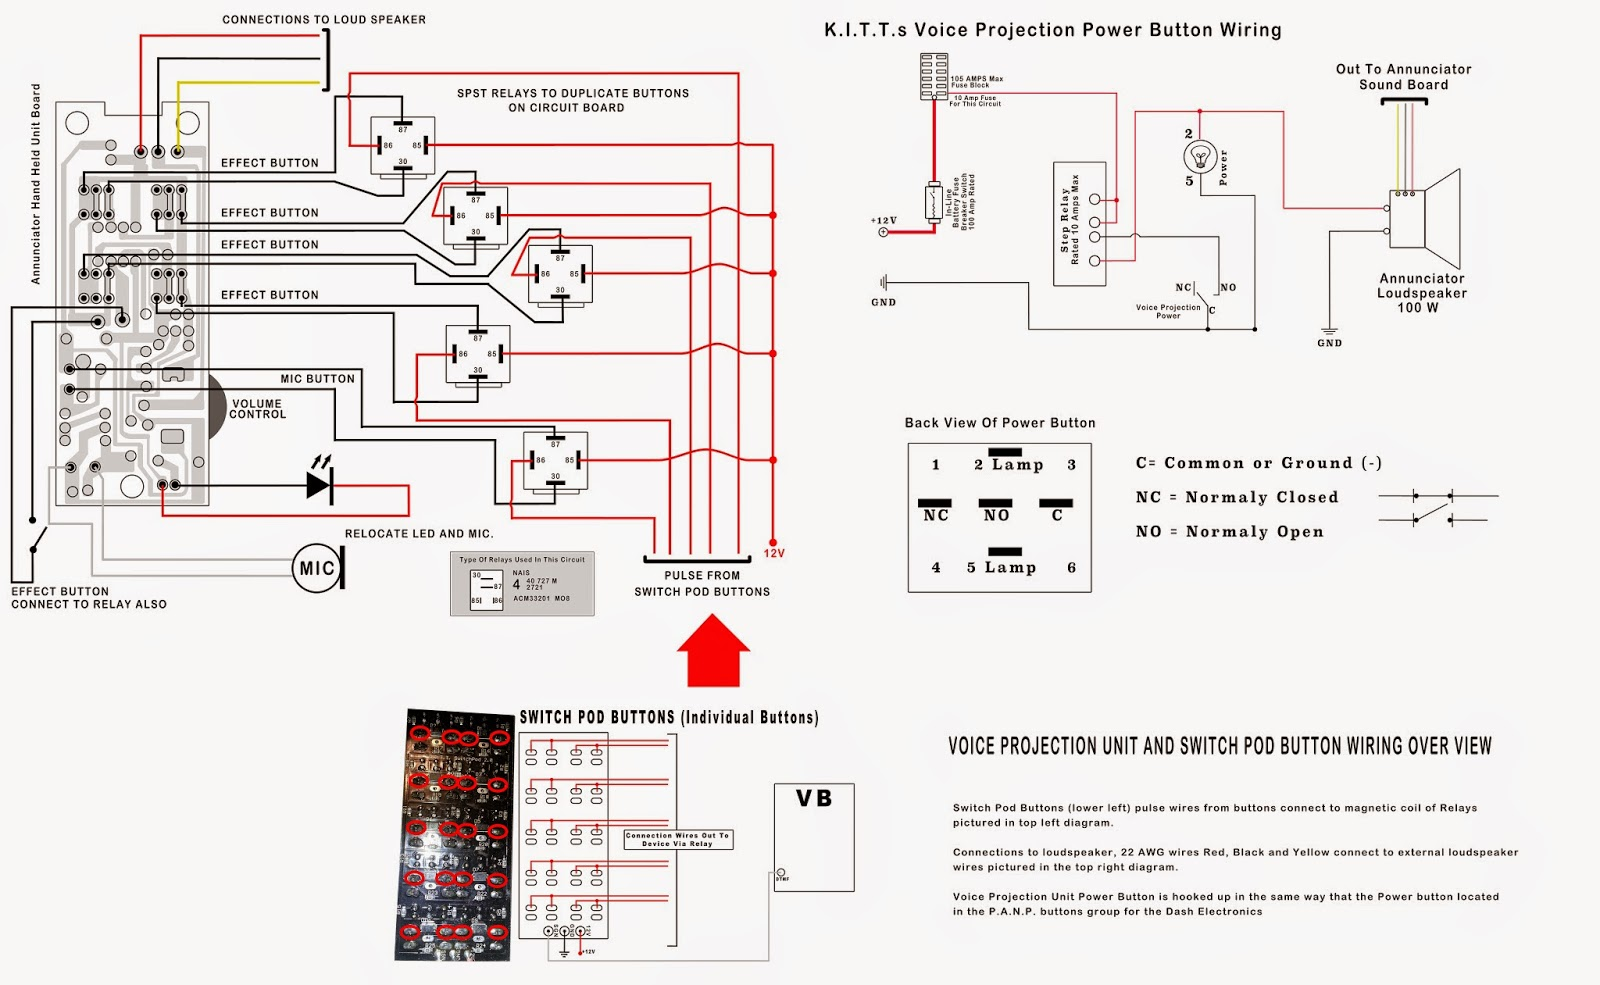 perko 8501 wiring diagram perko get free image about blue sea battery switch wiring diagram blue sea battery selector switch wiring diagram [ 1600 x 985 Pixel ]